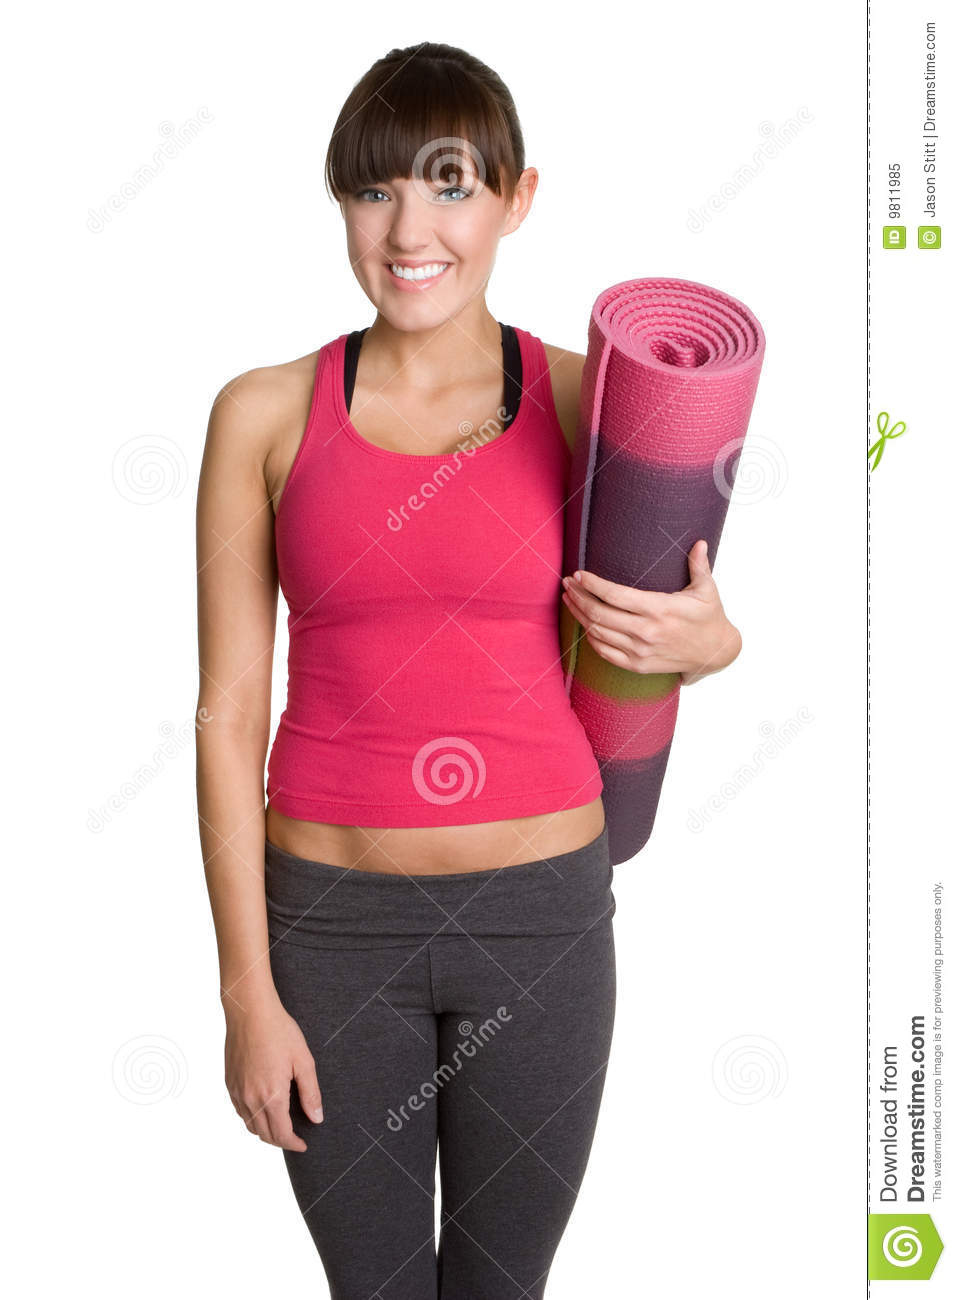 Yoga Mat Girl Stock Image Image Of Smiling Isolated